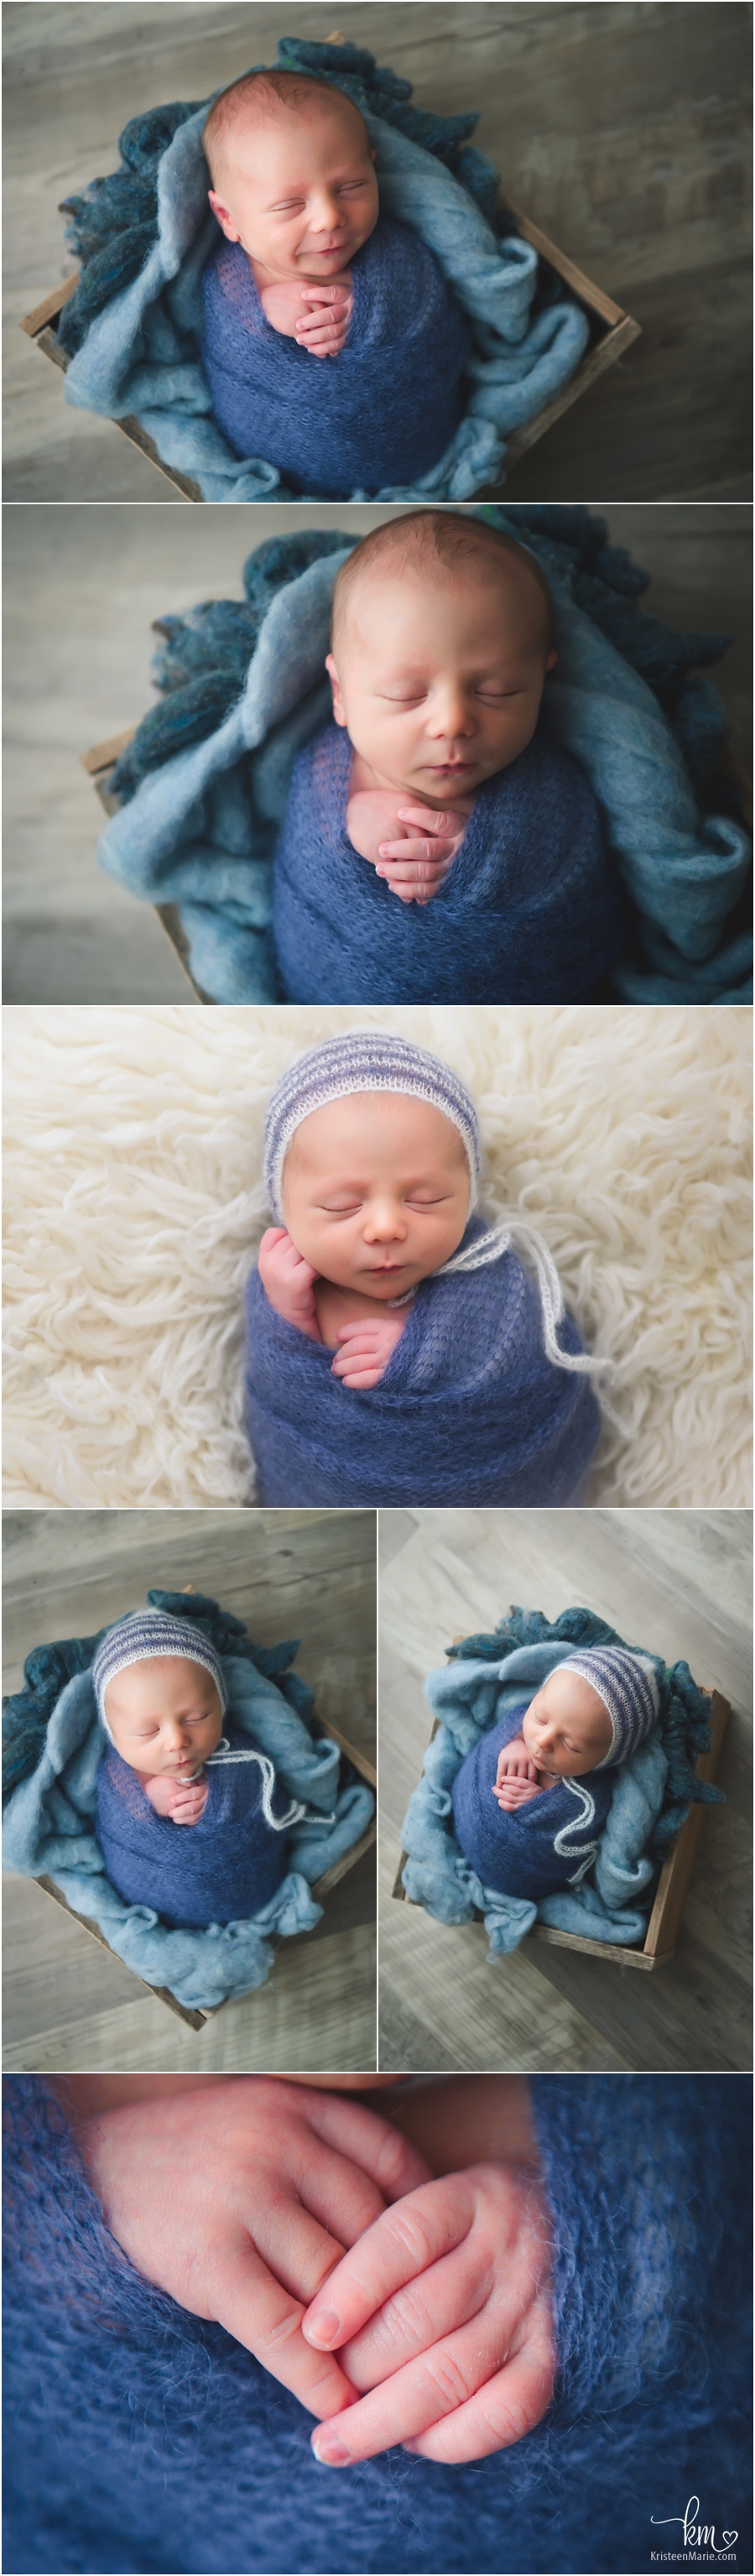 sleeping newborn boy in blue - beachy theme/set-up